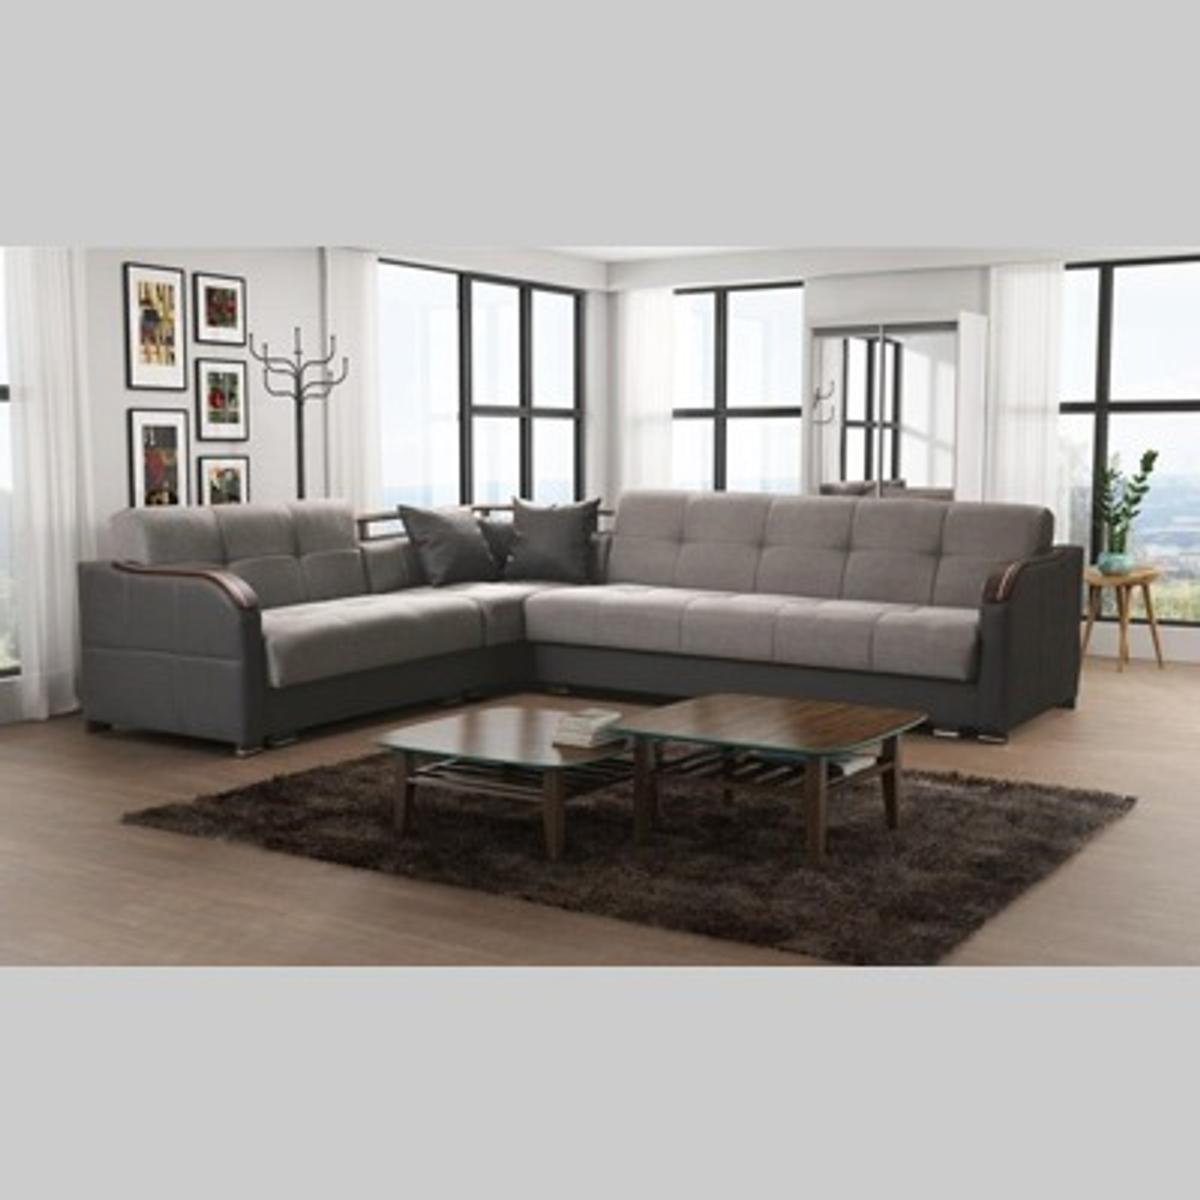 Remarkable 20 Off On Futuro Corner Sofa Bed Lamtechconsult Wood Chair Design Ideas Lamtechconsultcom